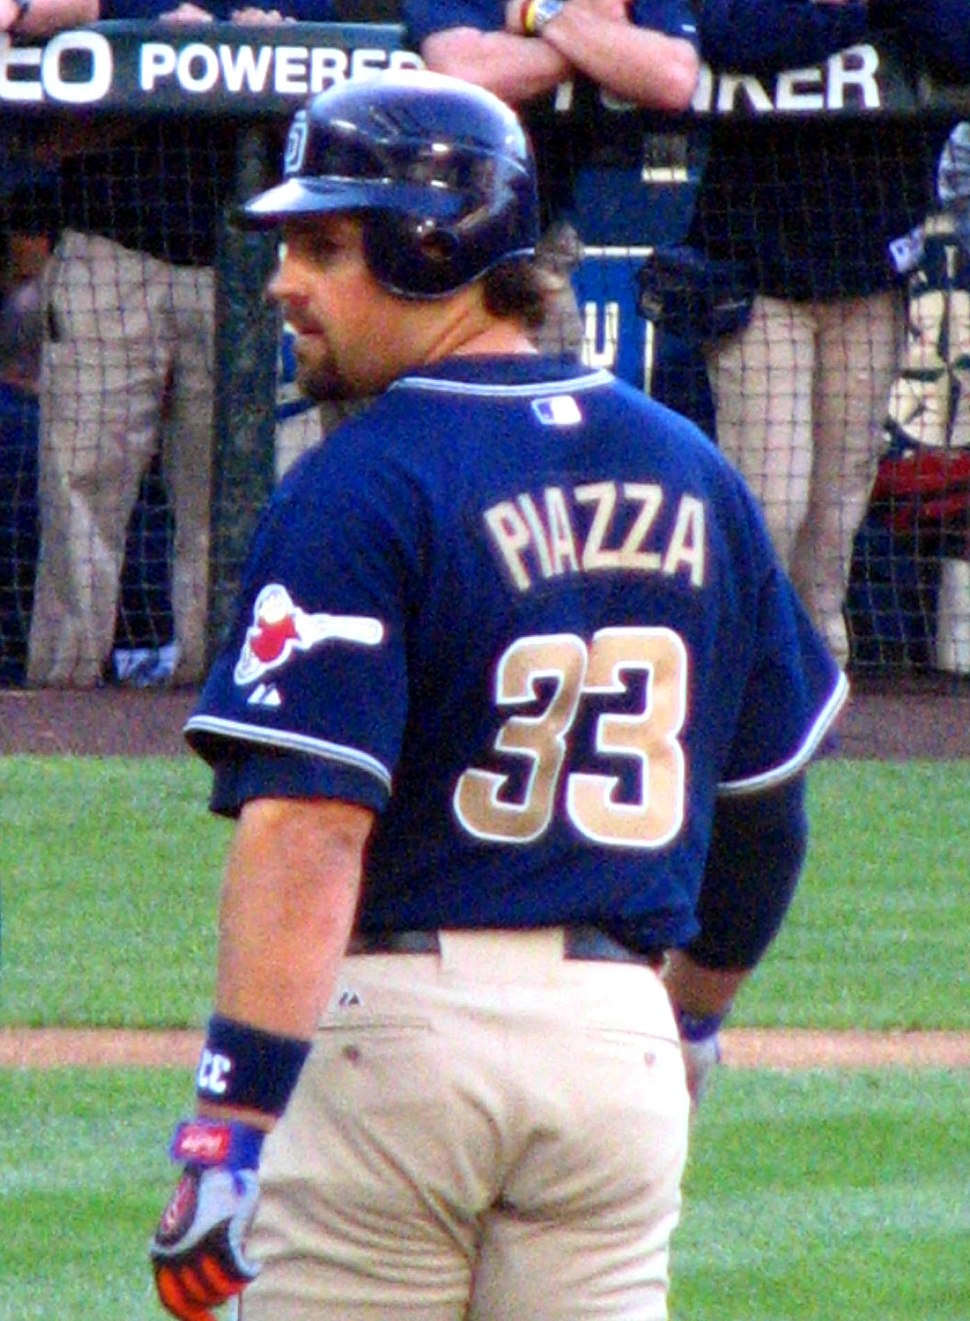 Piazza on 1st (future hall of famer)